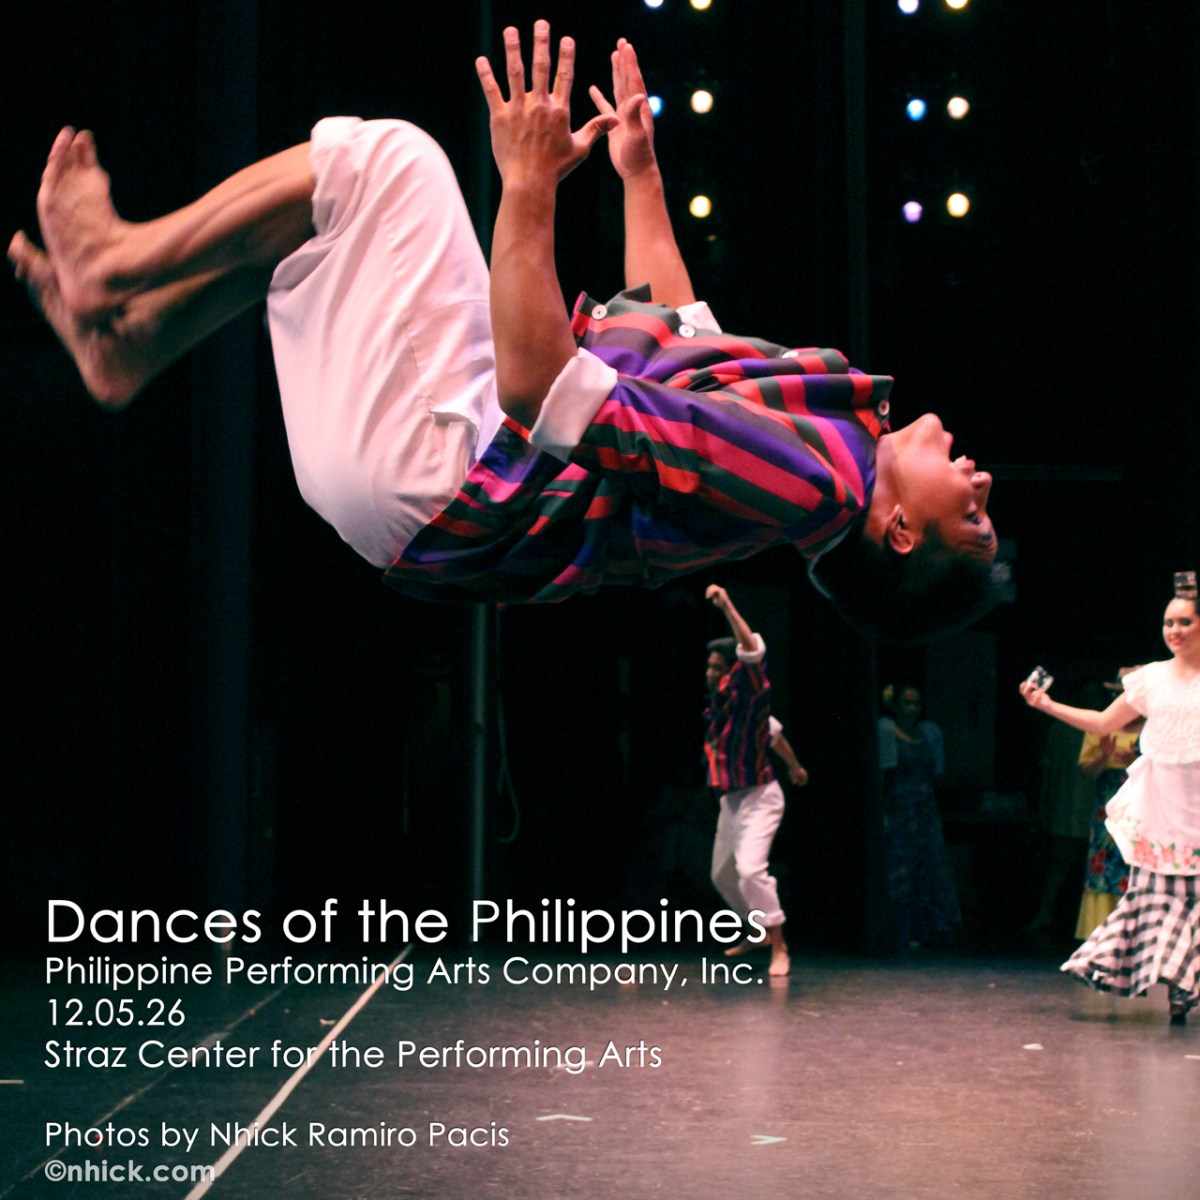 Dances of the Philippines